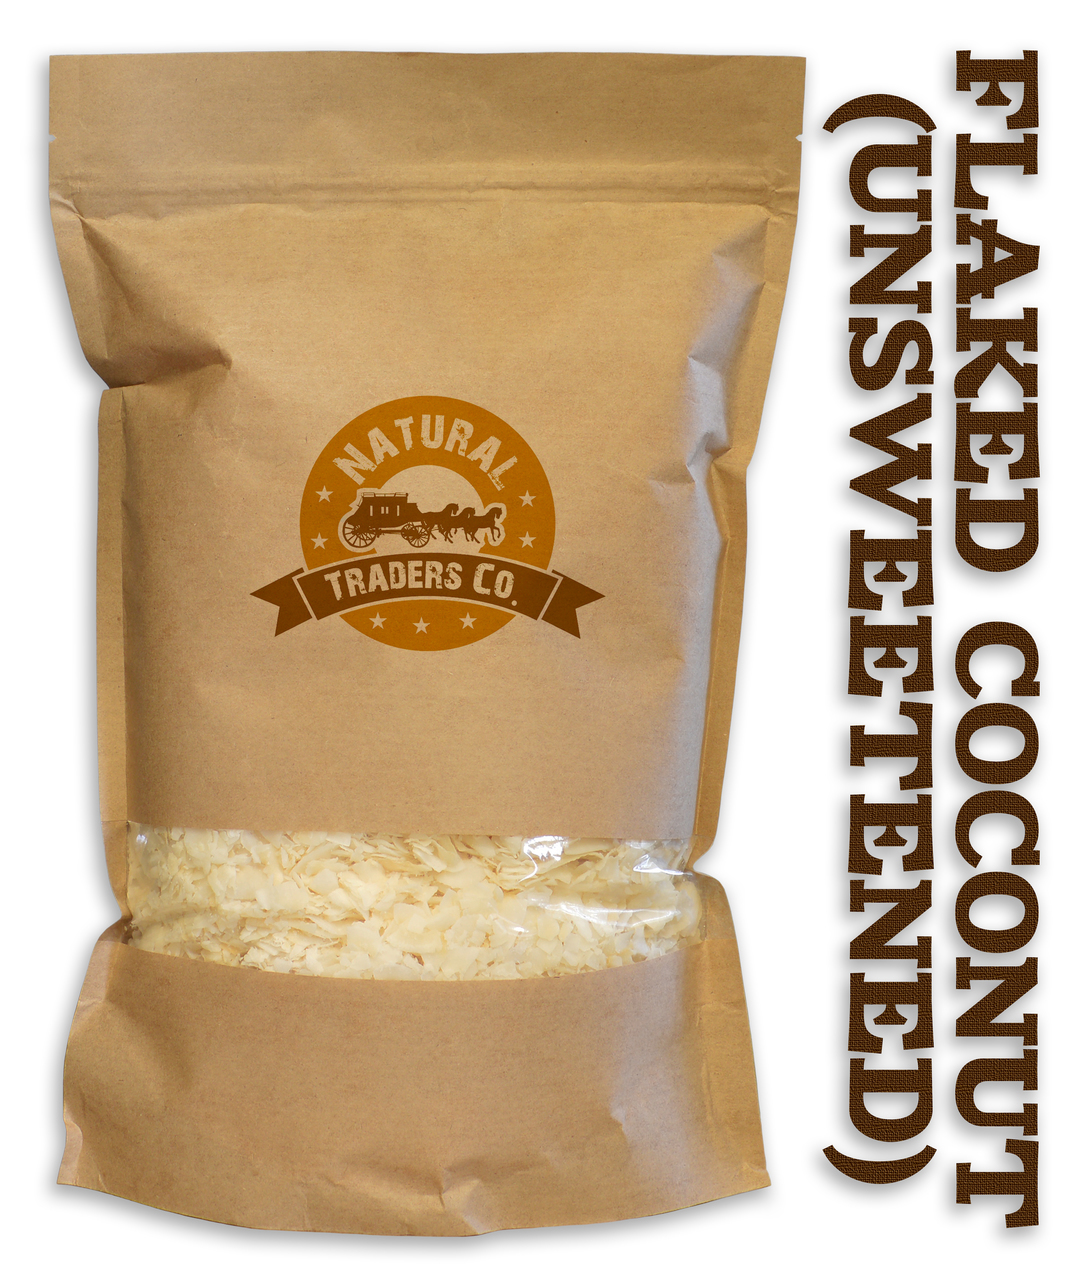 Natural Unsweetened Coconut Flakes 1lb Bag Kosher, NON GMO, Gluten Free, Vegan by